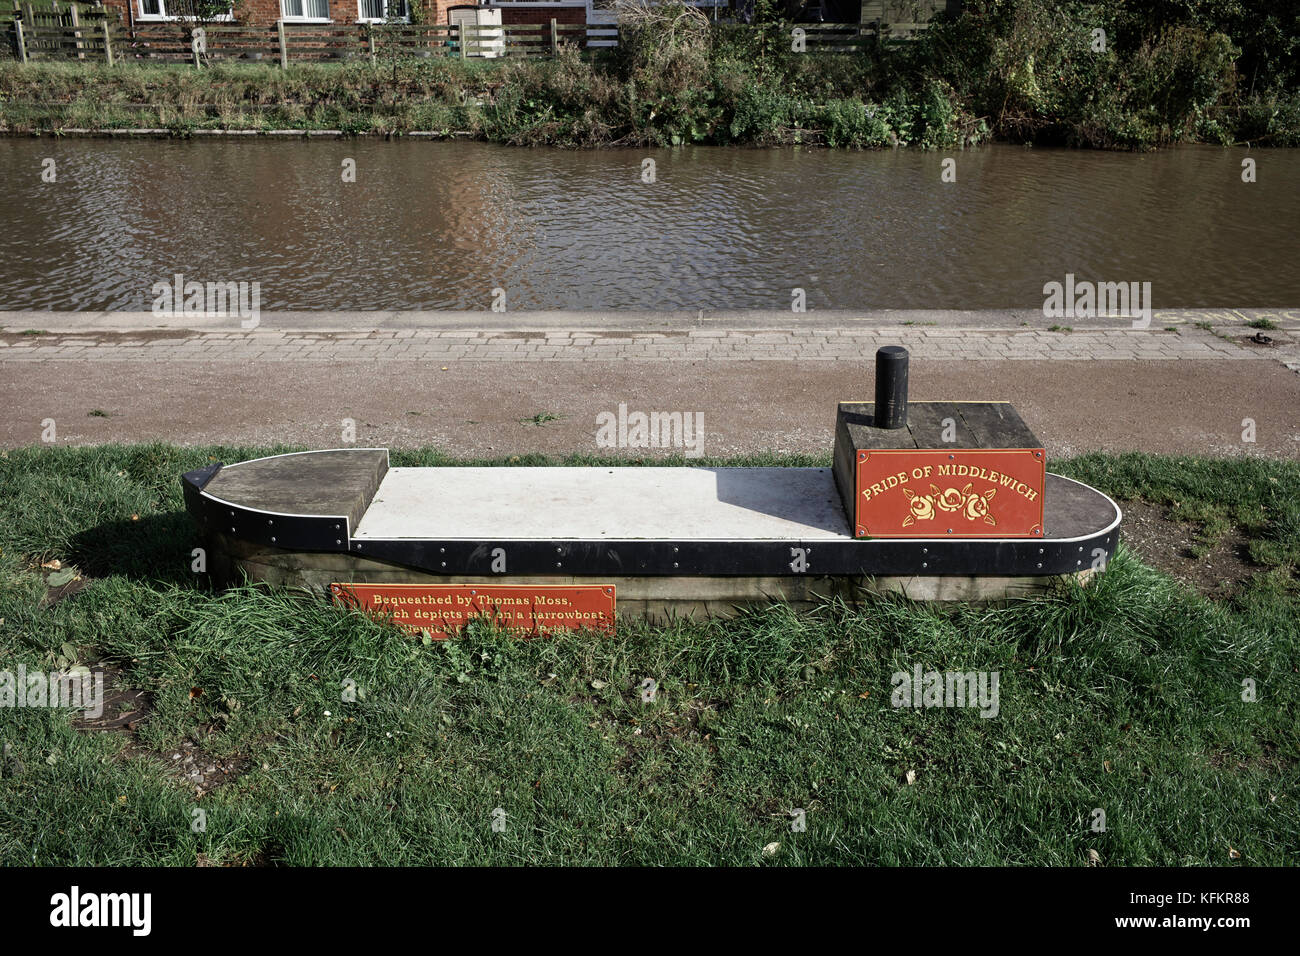 Canalside seat in the shape of a narrowboat - Stock Image